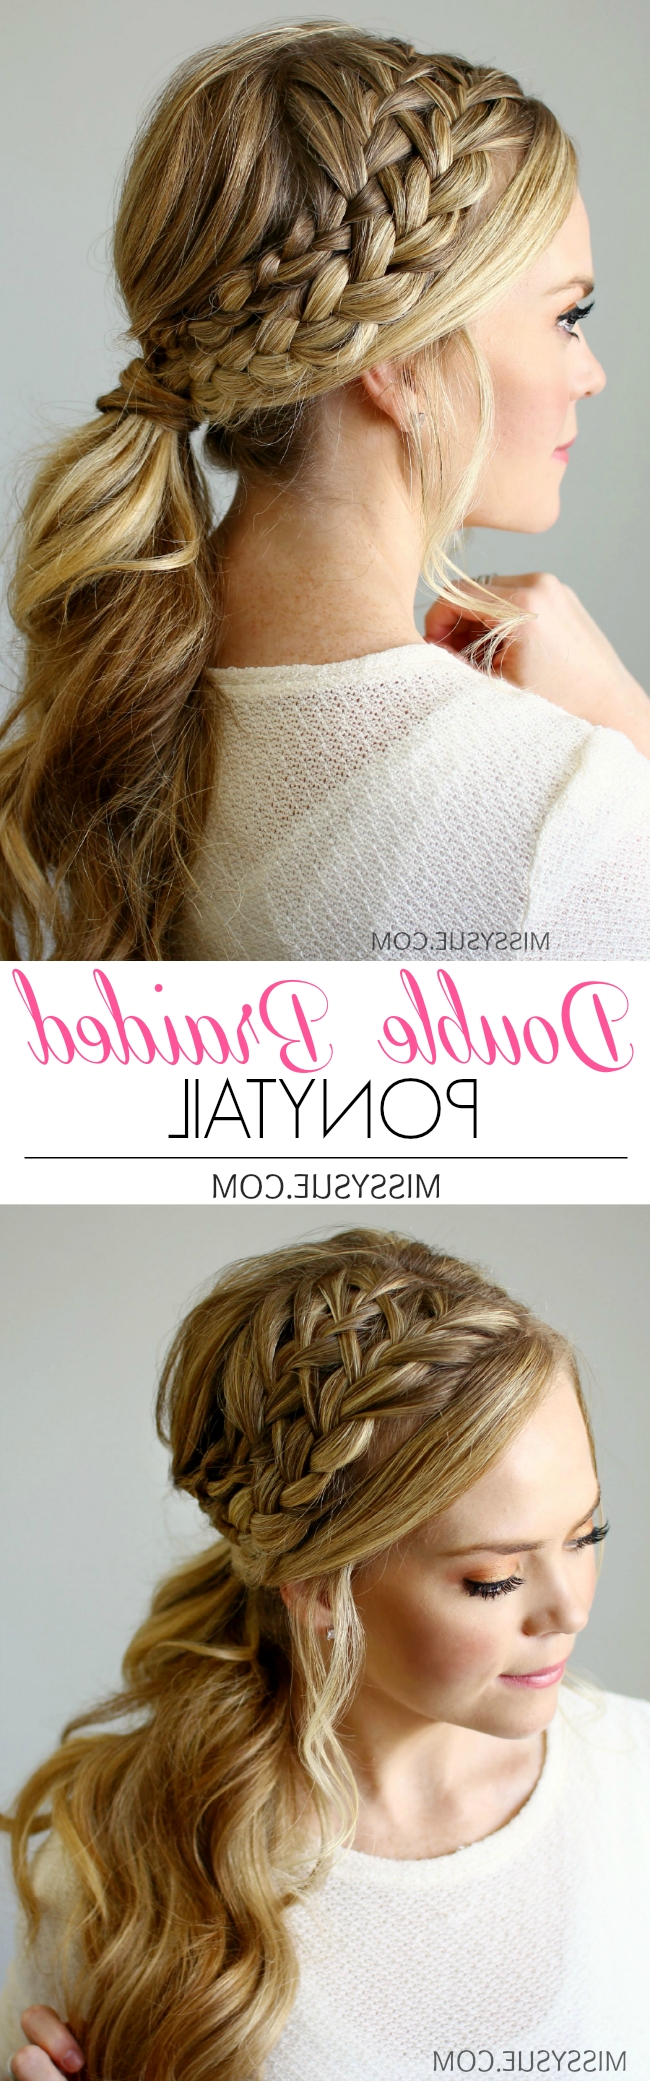 Double Braided Ponytail With Regard To Most Up To Date Twin Braid Updo Ponytail Hairstyles (Gallery 5 of 20)